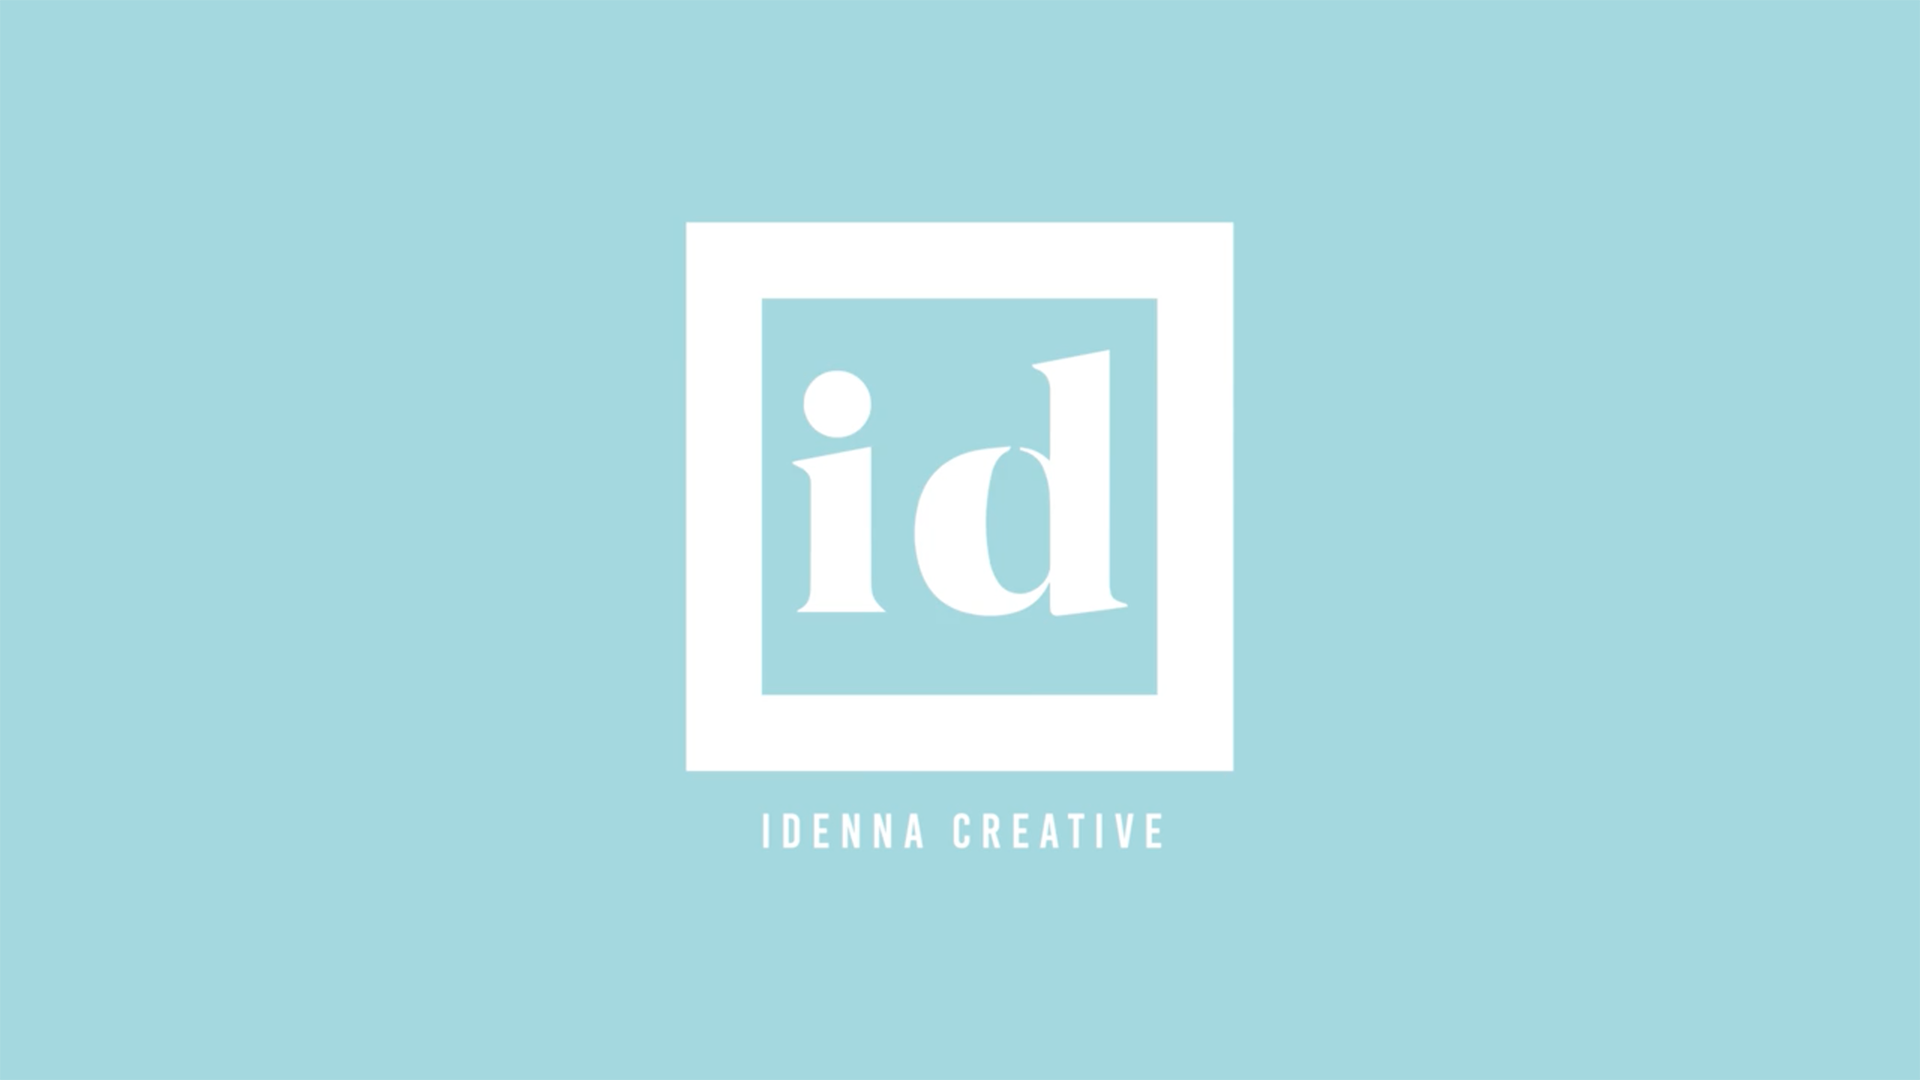 Idenna Homepage Full Service Image